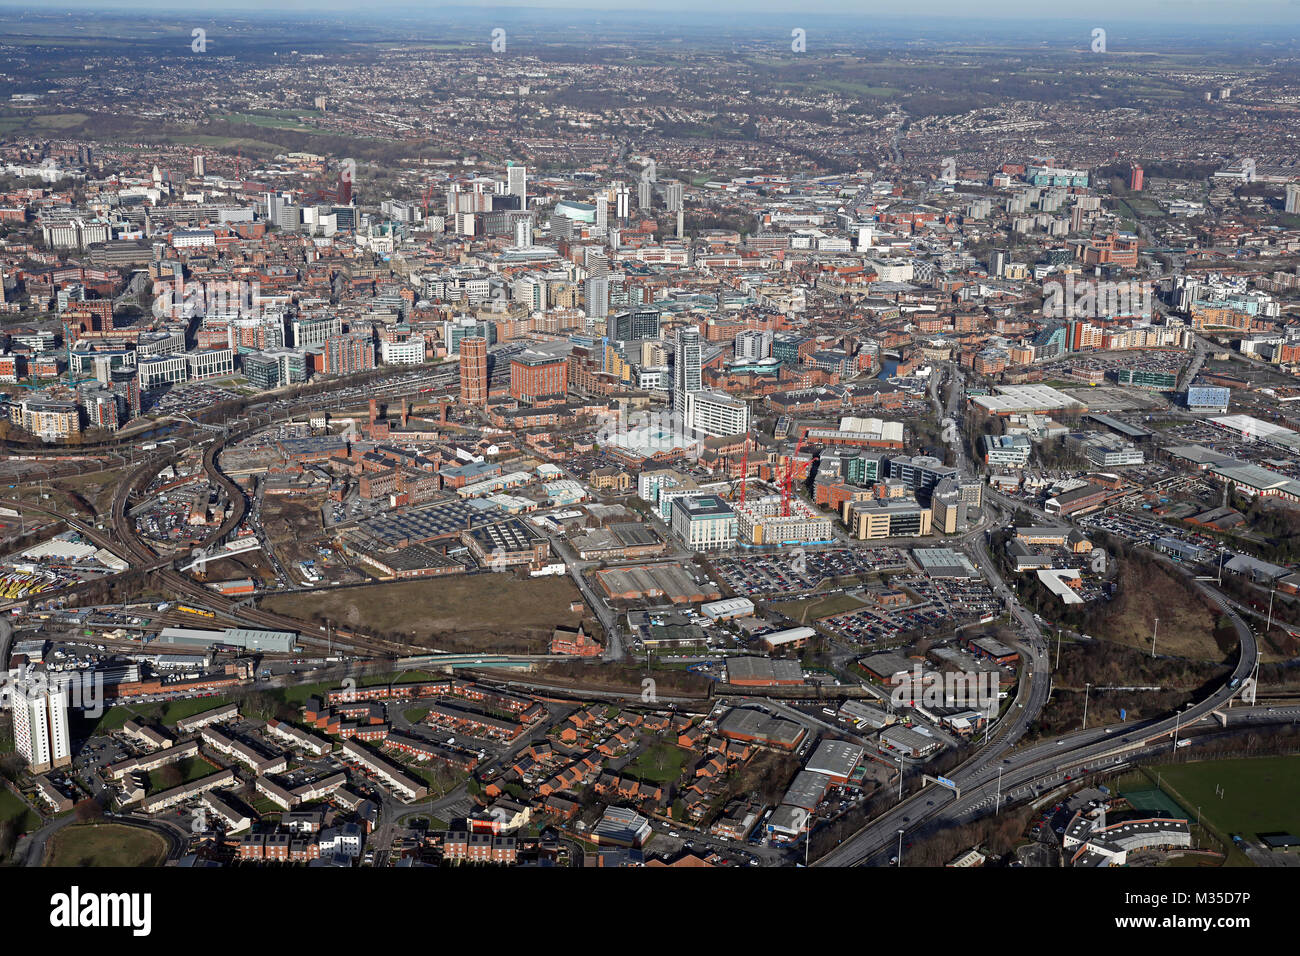 aerial view of Leeds city centre skyline from the south west, UK - Stock Image